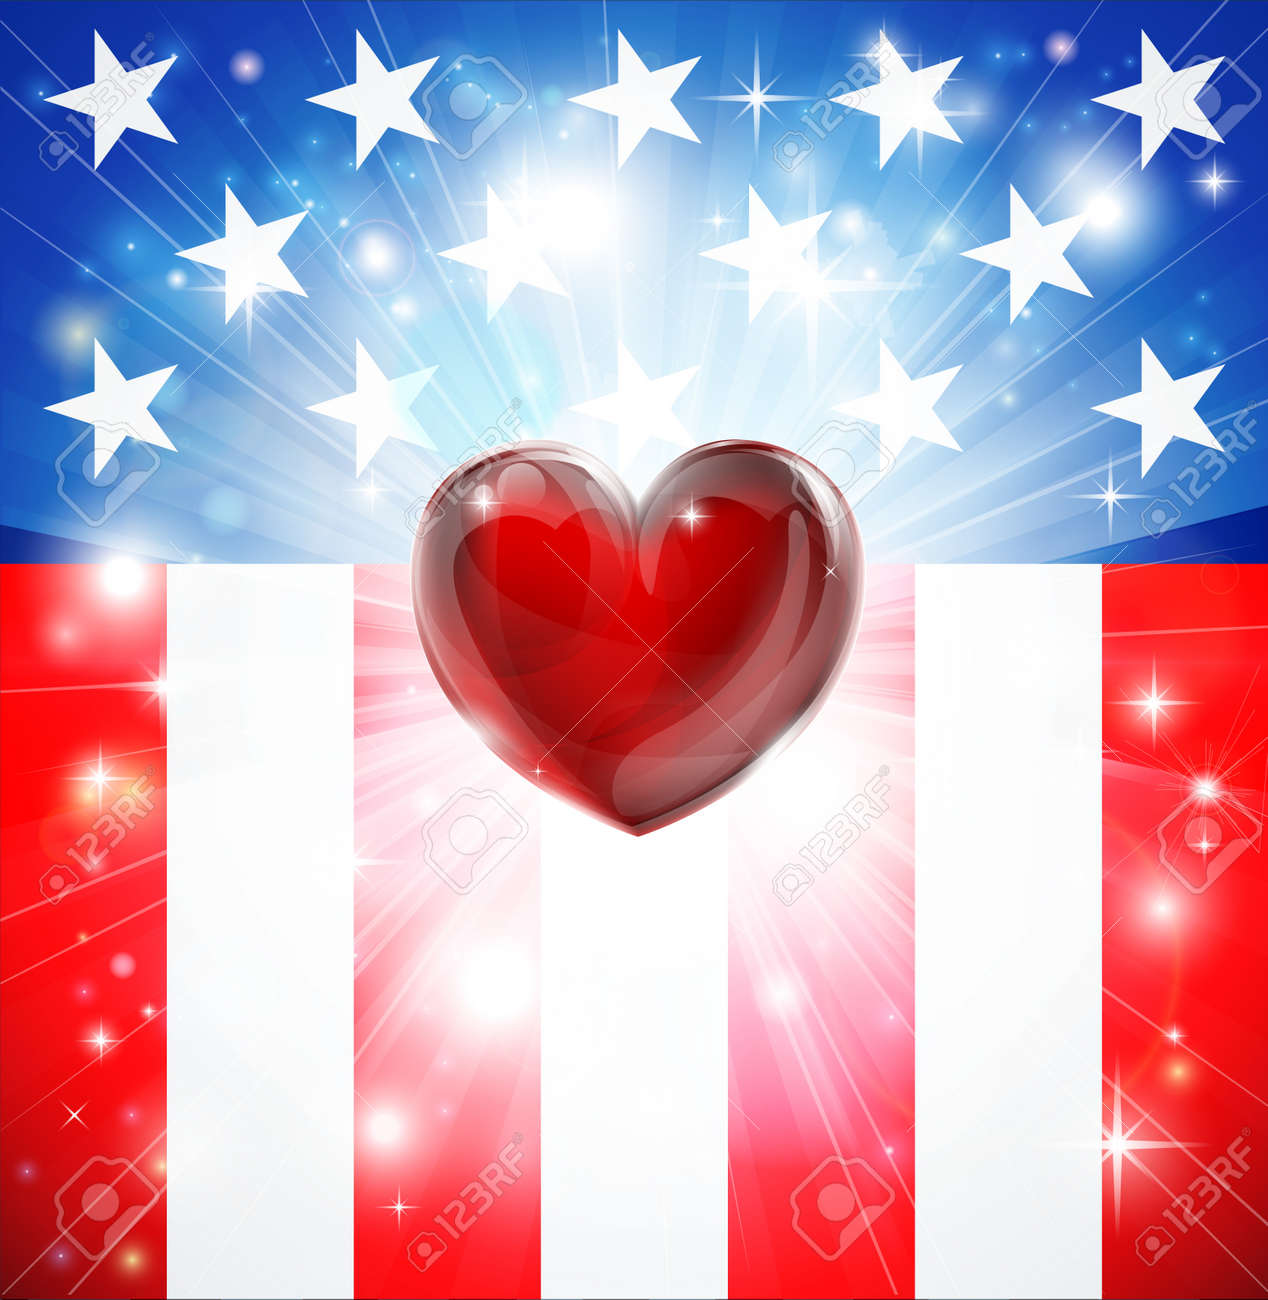 american flag patriotic background with heart concept for love